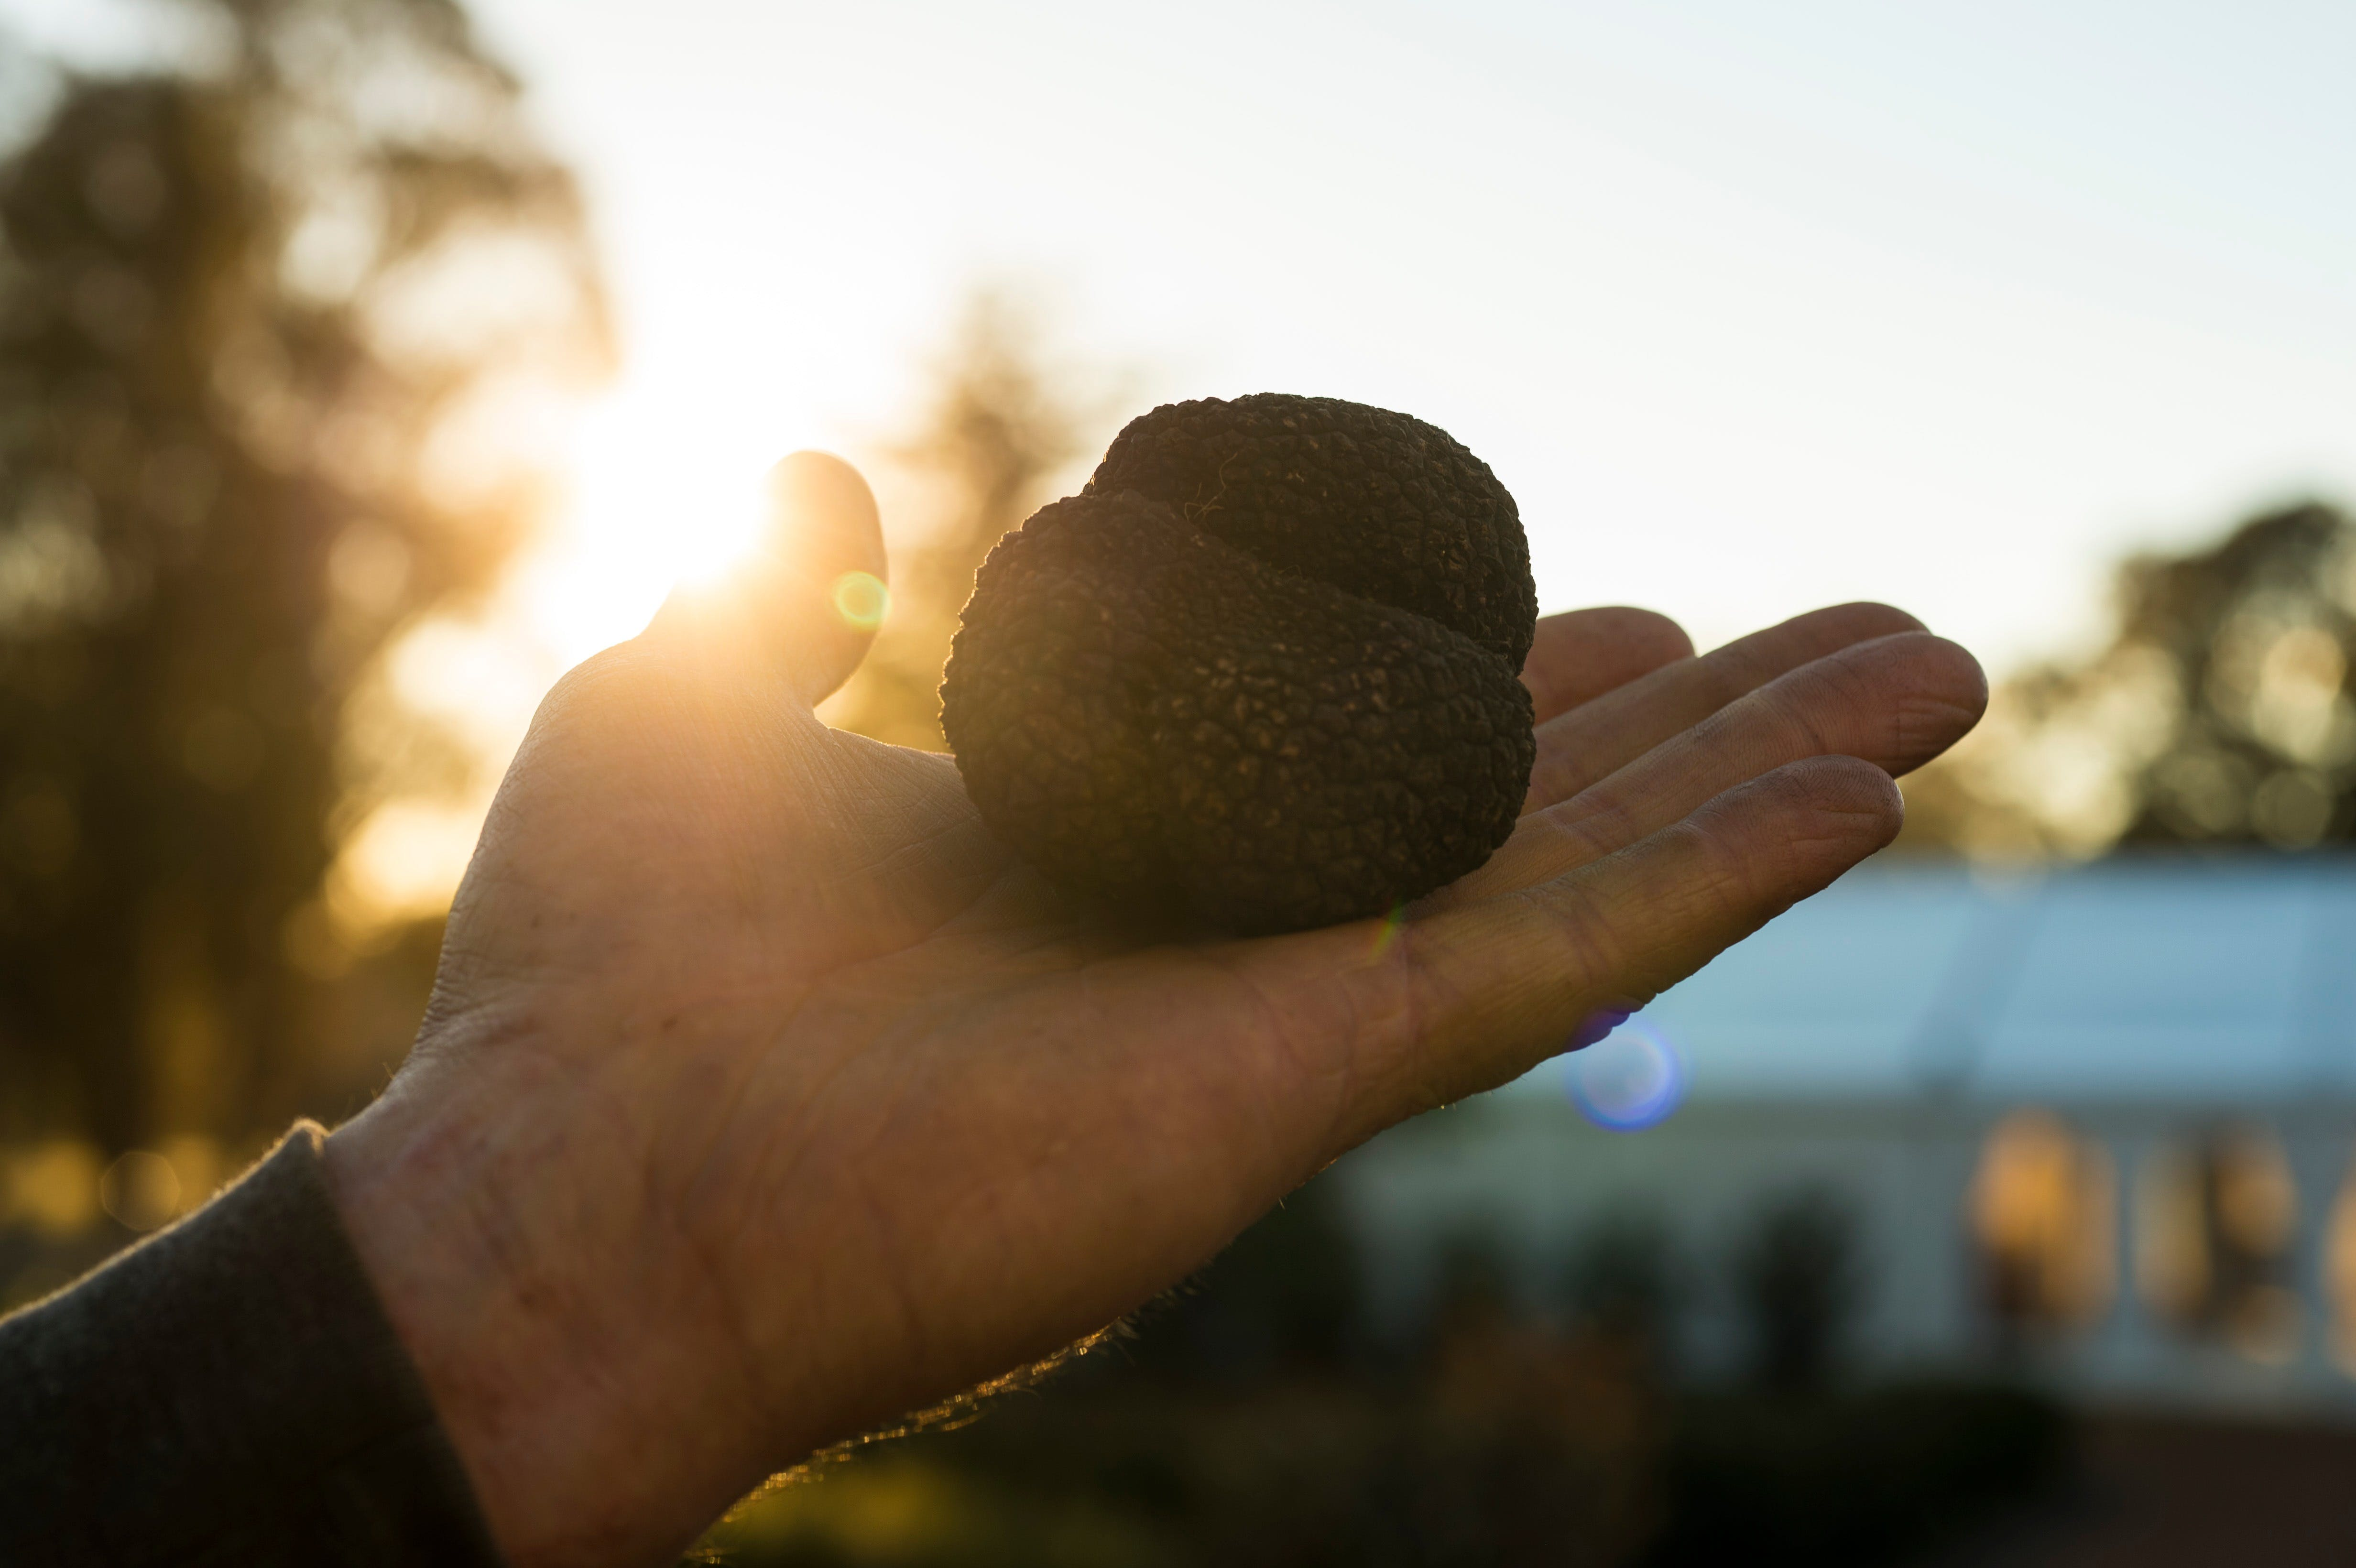 The Truffle Festival - Canberra Region